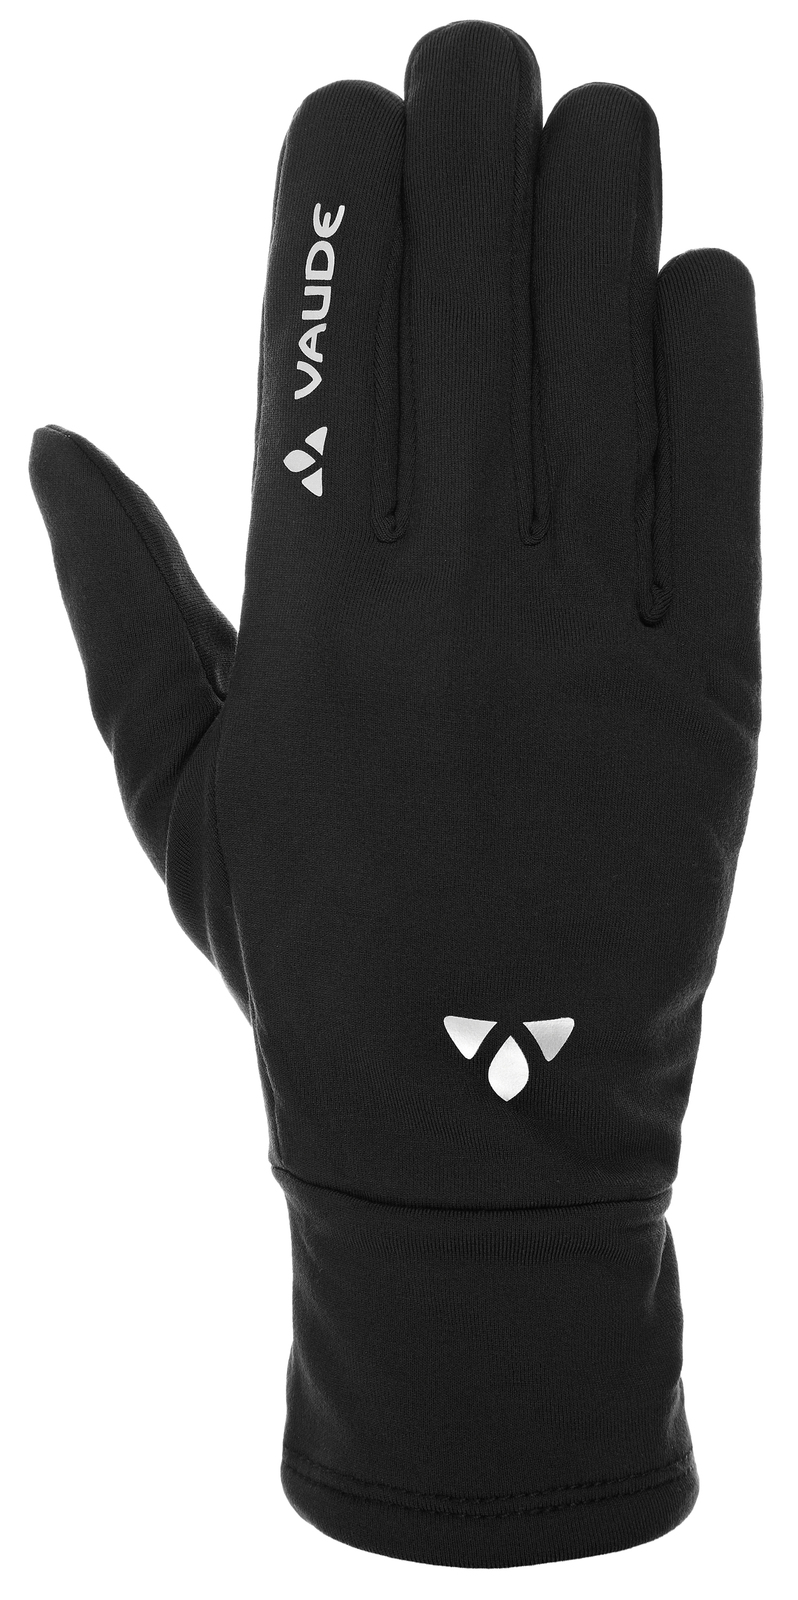 VAUDE Haver Gloves II black Größe 5 - schneider-sports